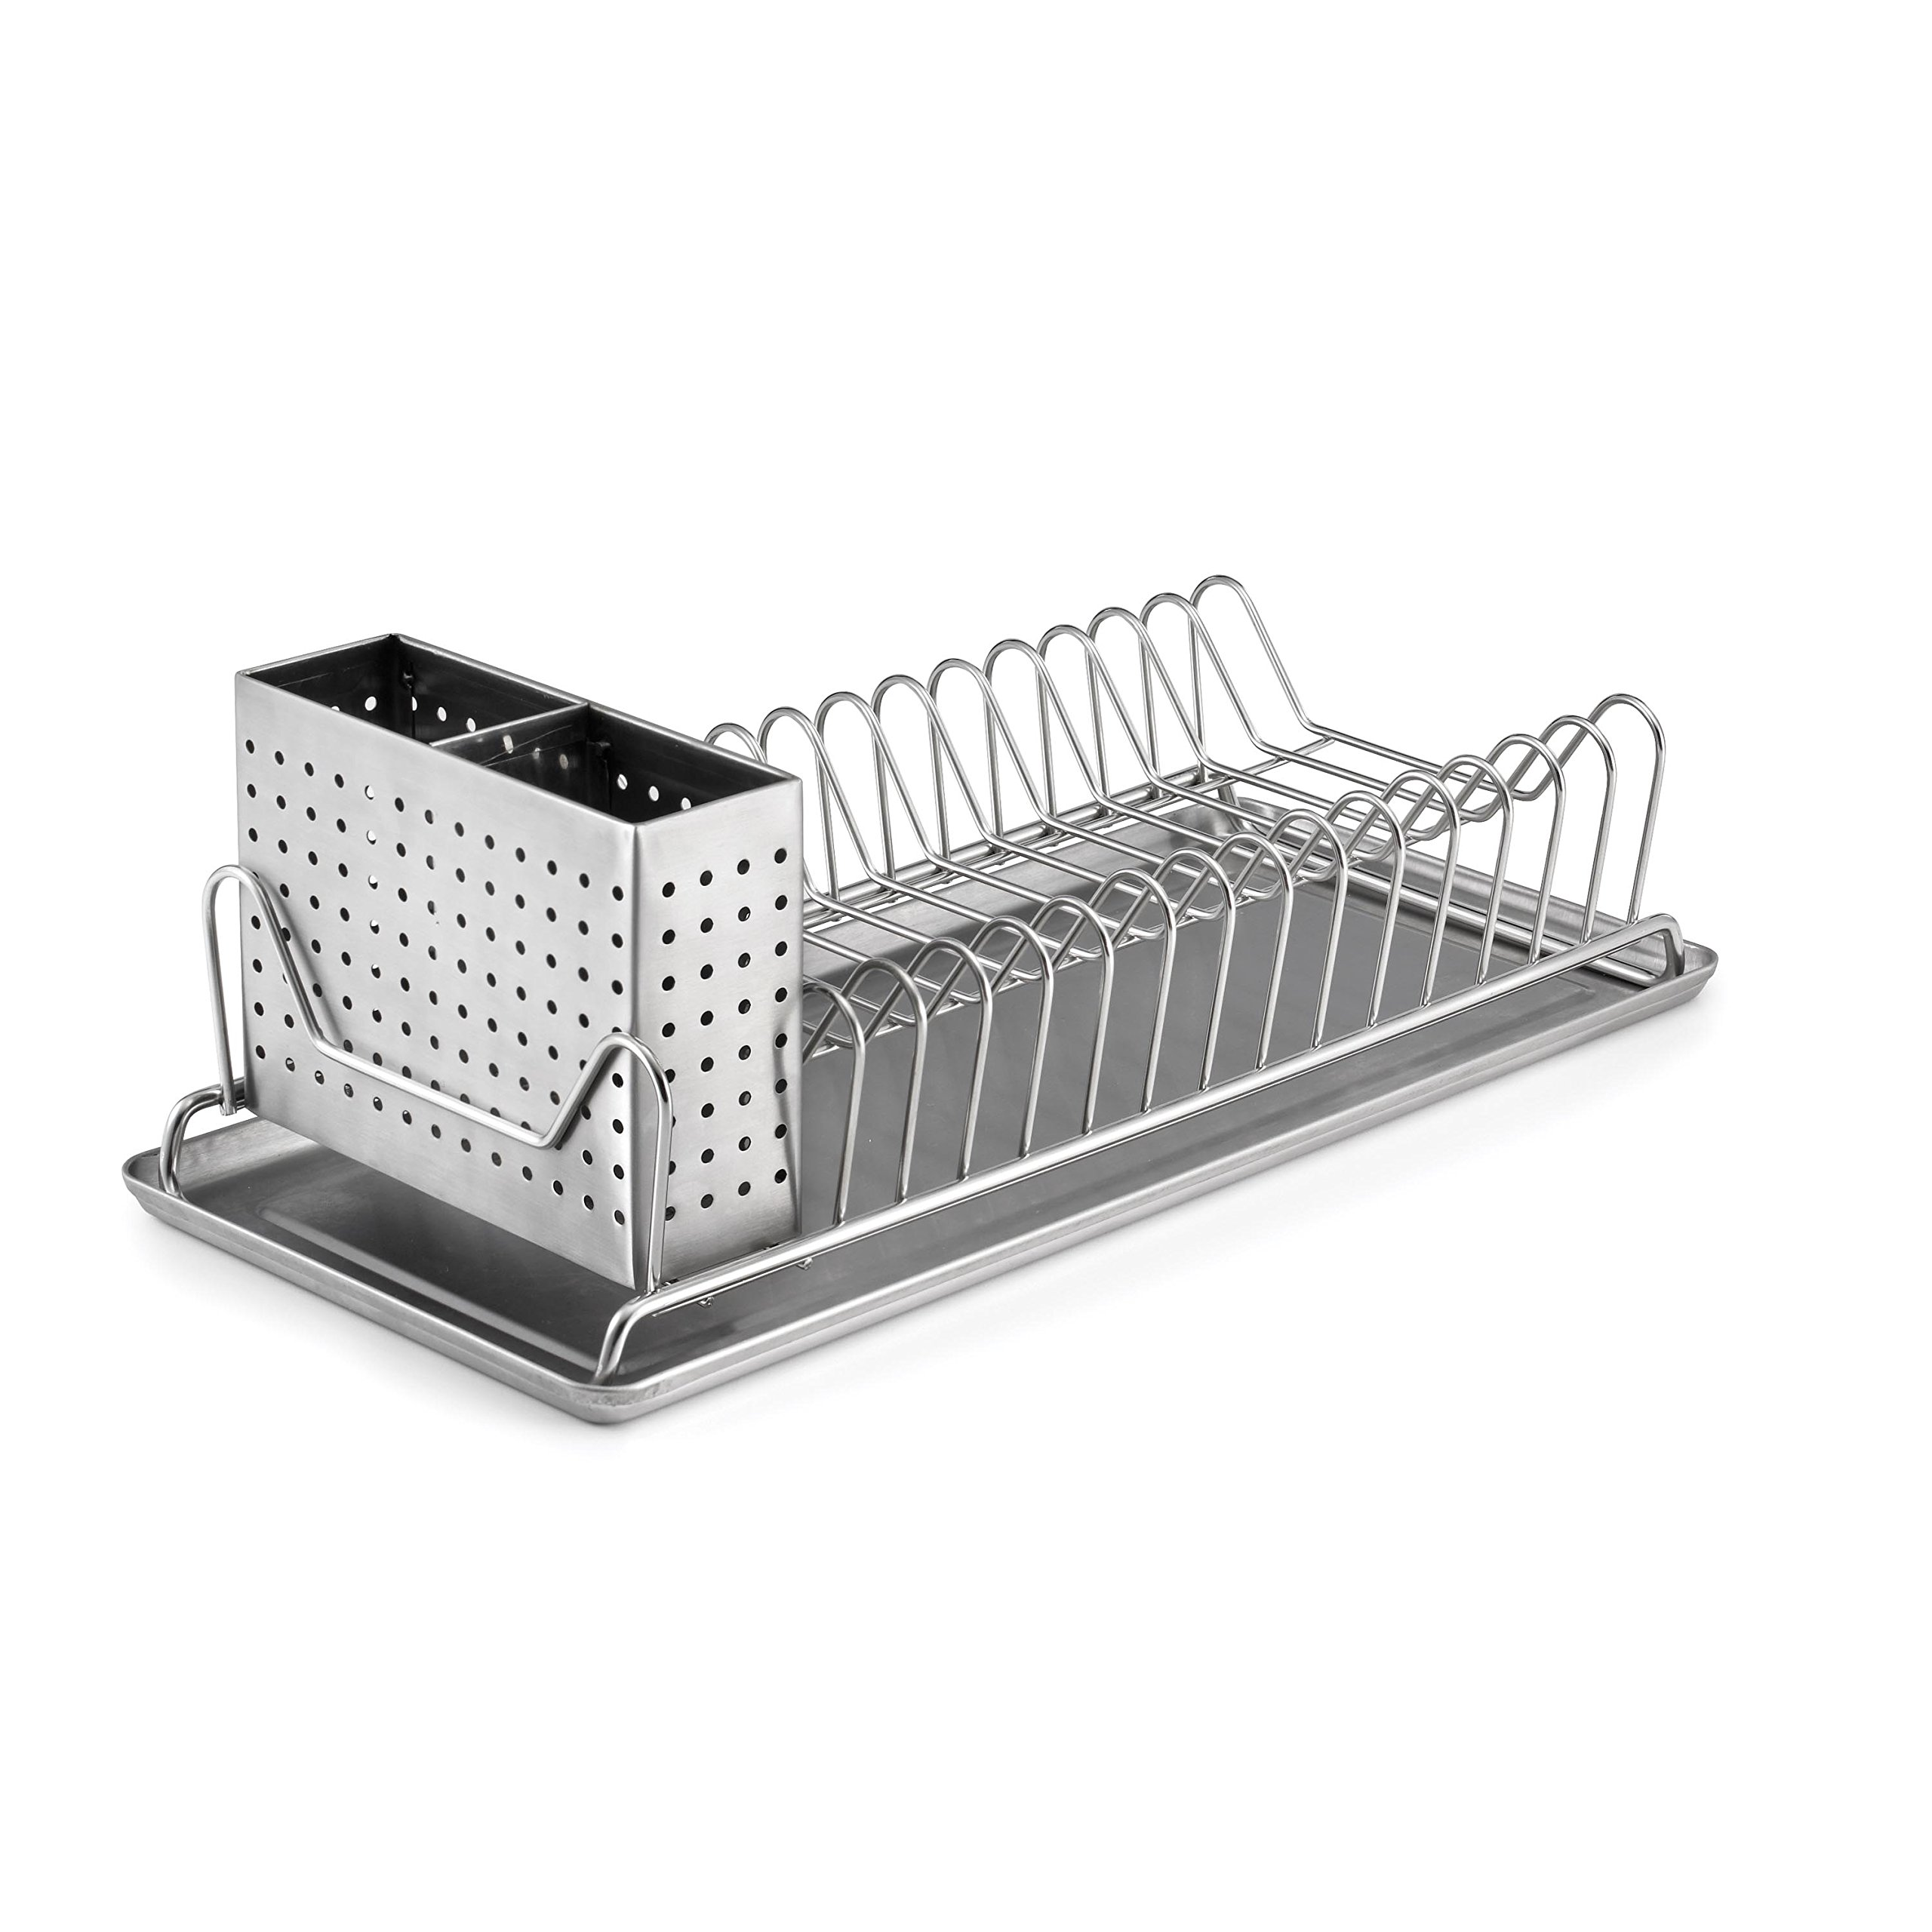 Polder 6115-75 Compact Stainless-Steel Dish Rack with Utensil Holder, 14'' x 6.5'' x 5''